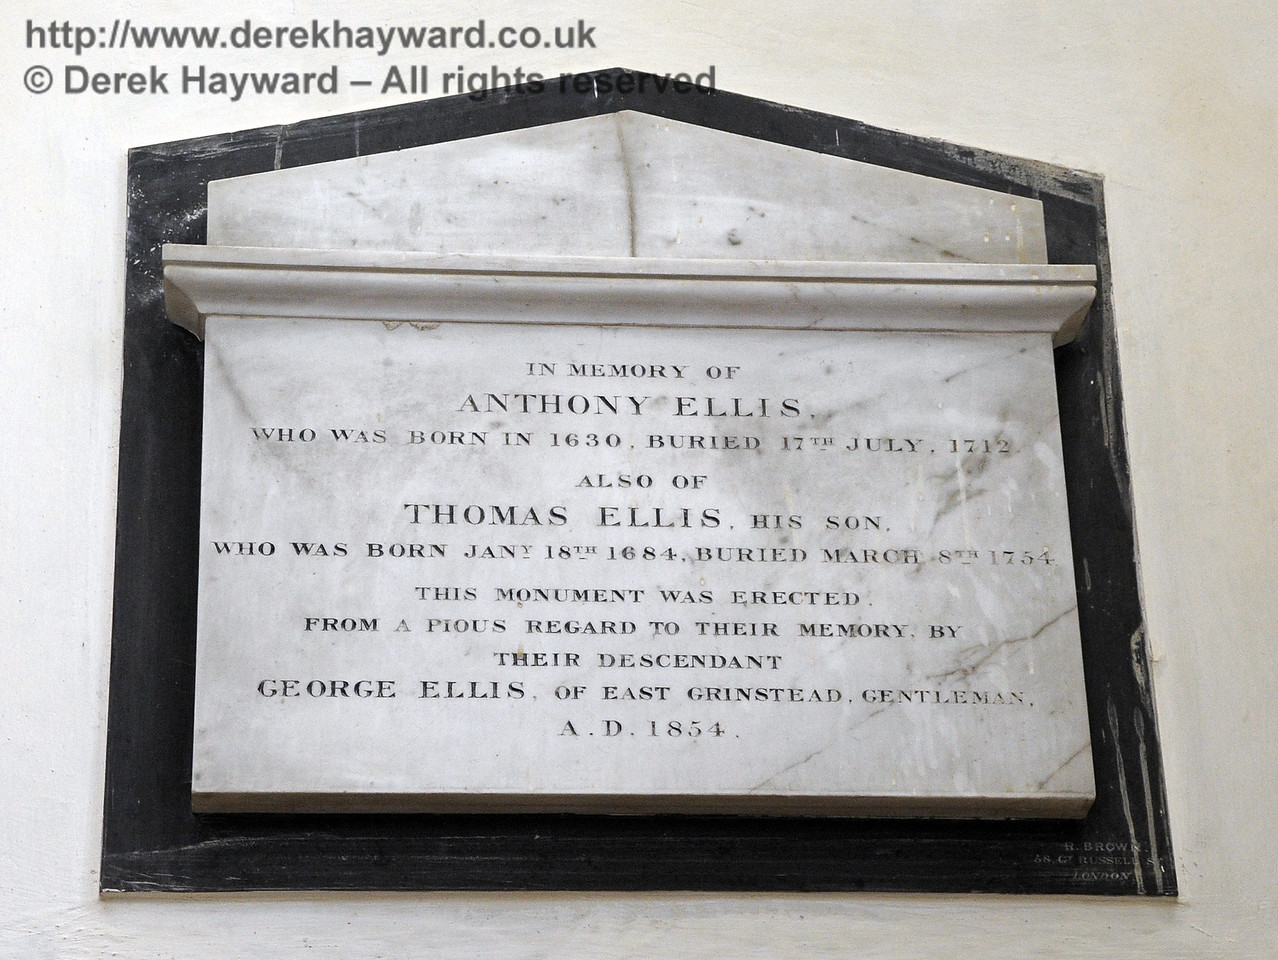 """In memory of Anthony Ellis<br /> who was born in 1630, buried 17th July 1712.<br /> Also of<br /> Thomas Ellis, his son<br /> who was born 18th January 1684, buried 8th March 1754,<br /> This monument was erected from a pious regard to their memory by their descendant<br /> George Ellis, of East Grinstead, Gentleman, AD 1854.""<br /> <br /> St Giles Church, Horsted Keynes 06.04.2013  6630"